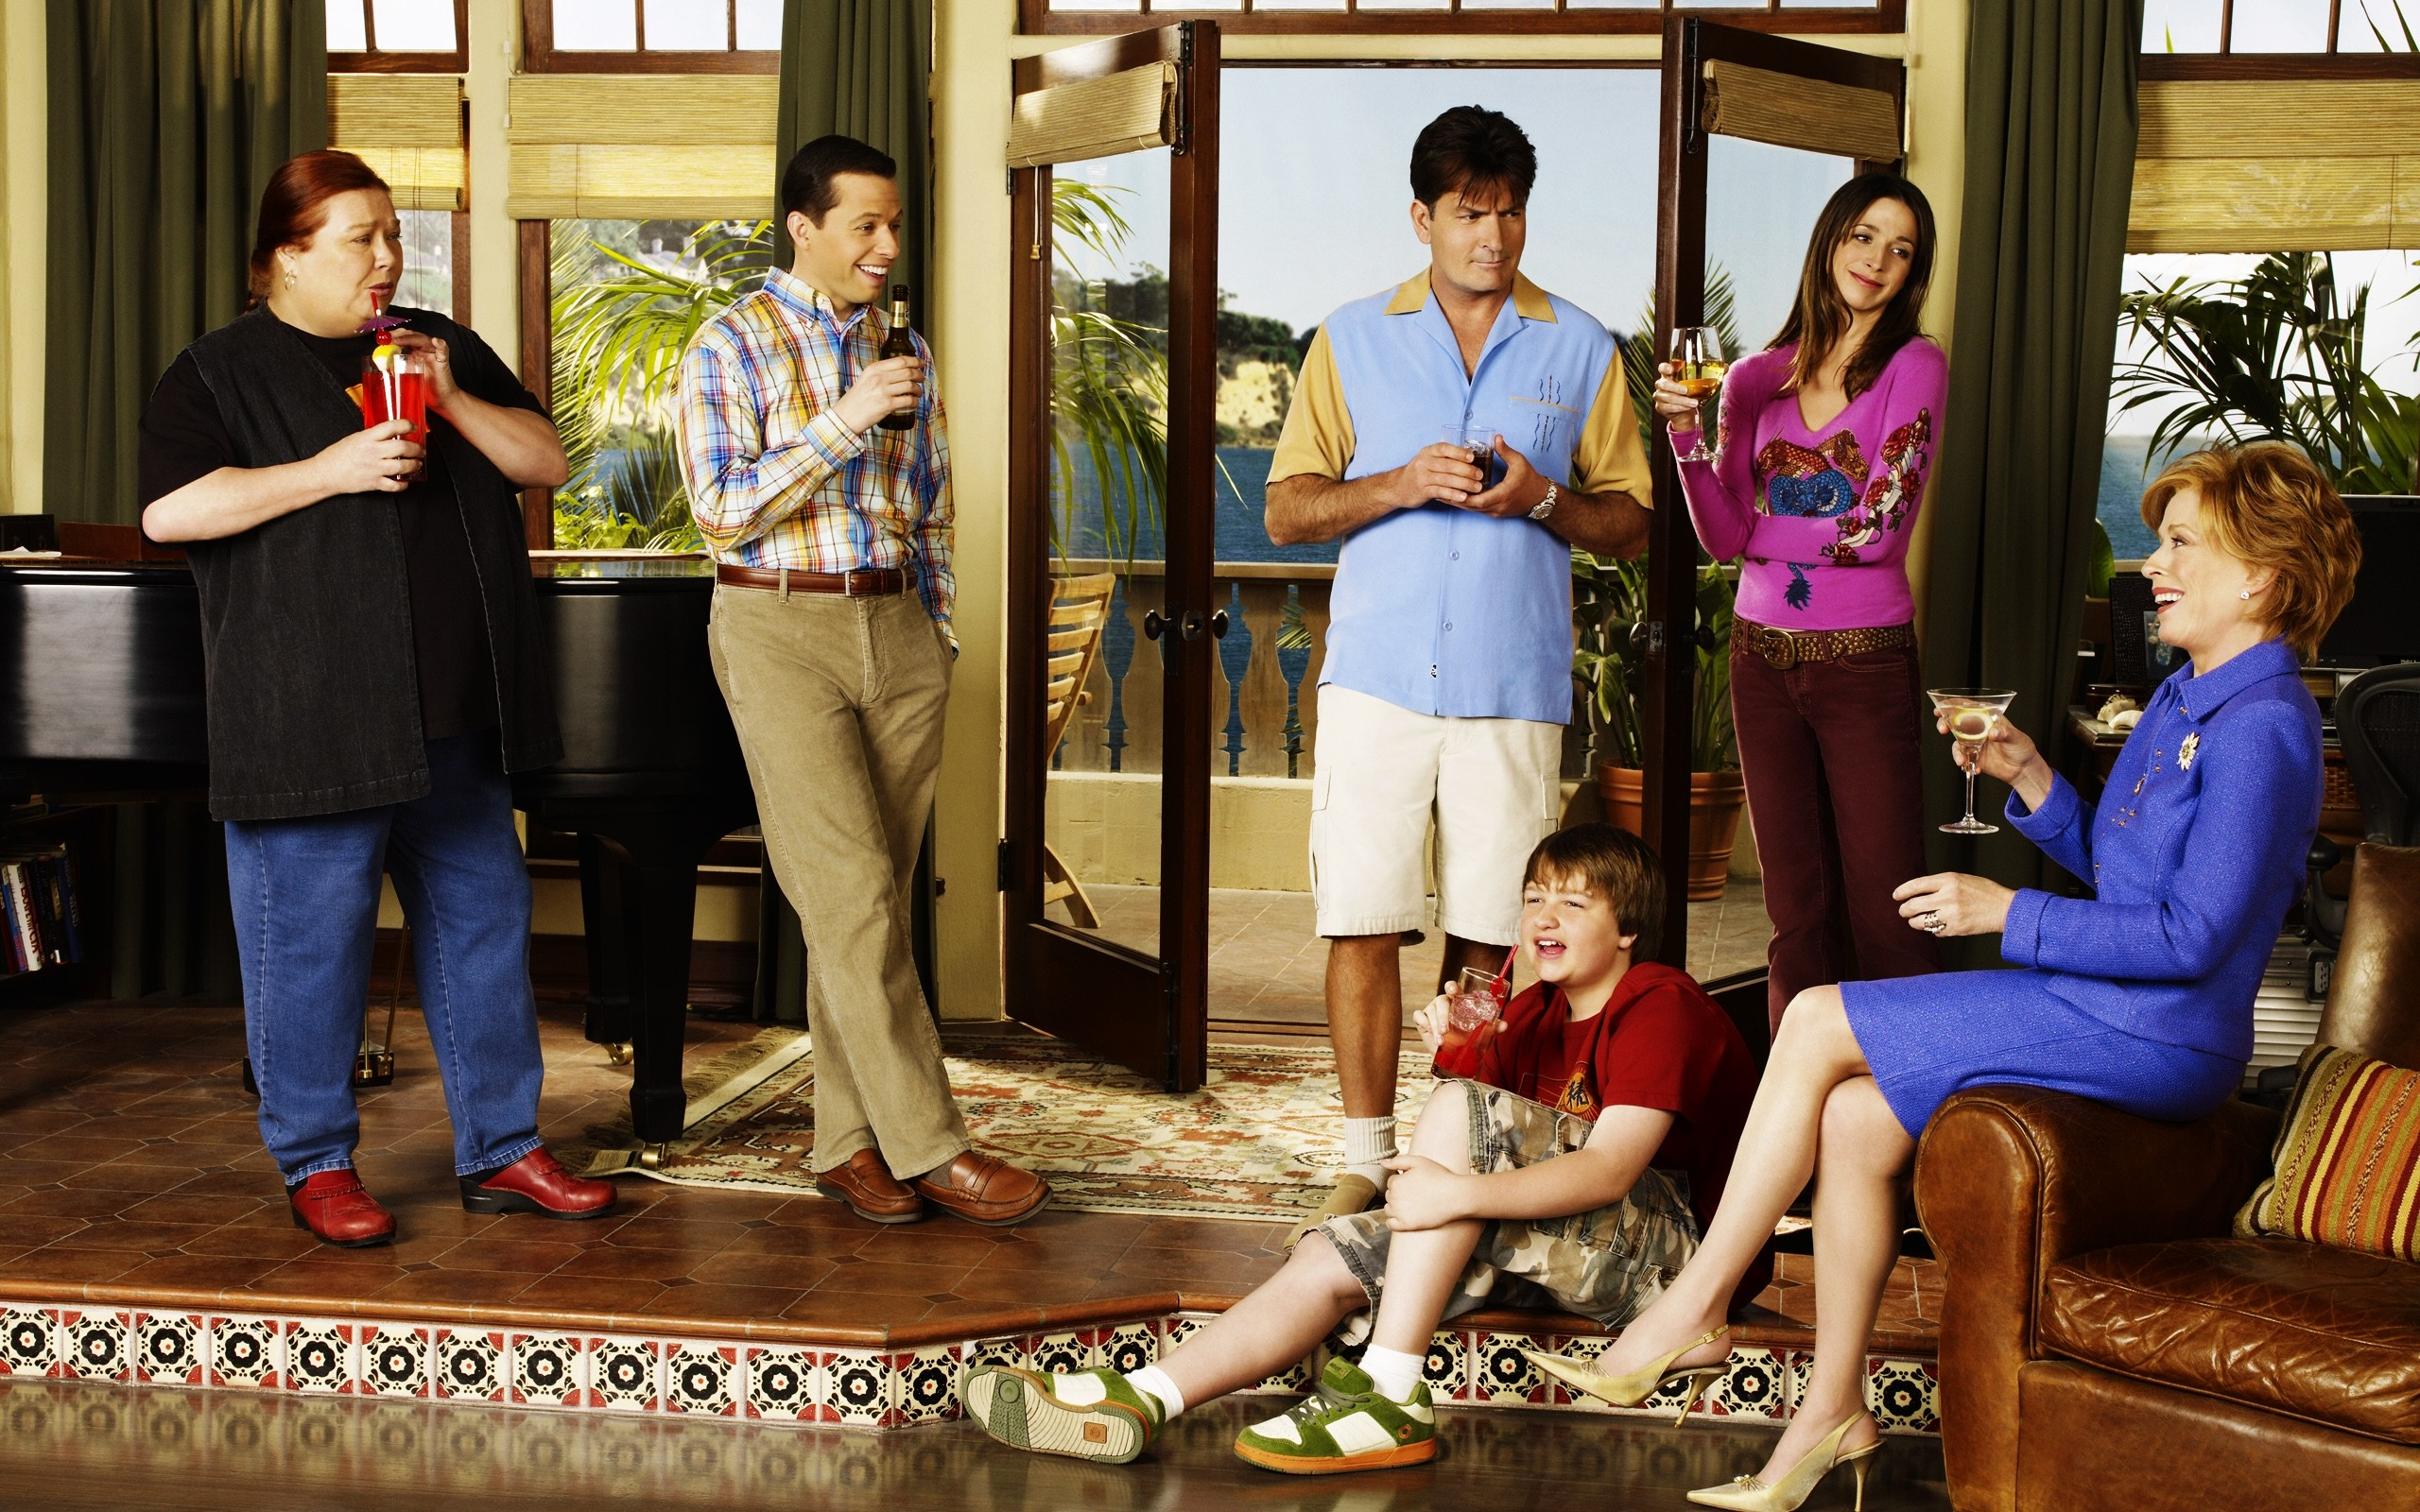 As a result, production on two and a half men has been placed on hold until its main star is healthy enough to work